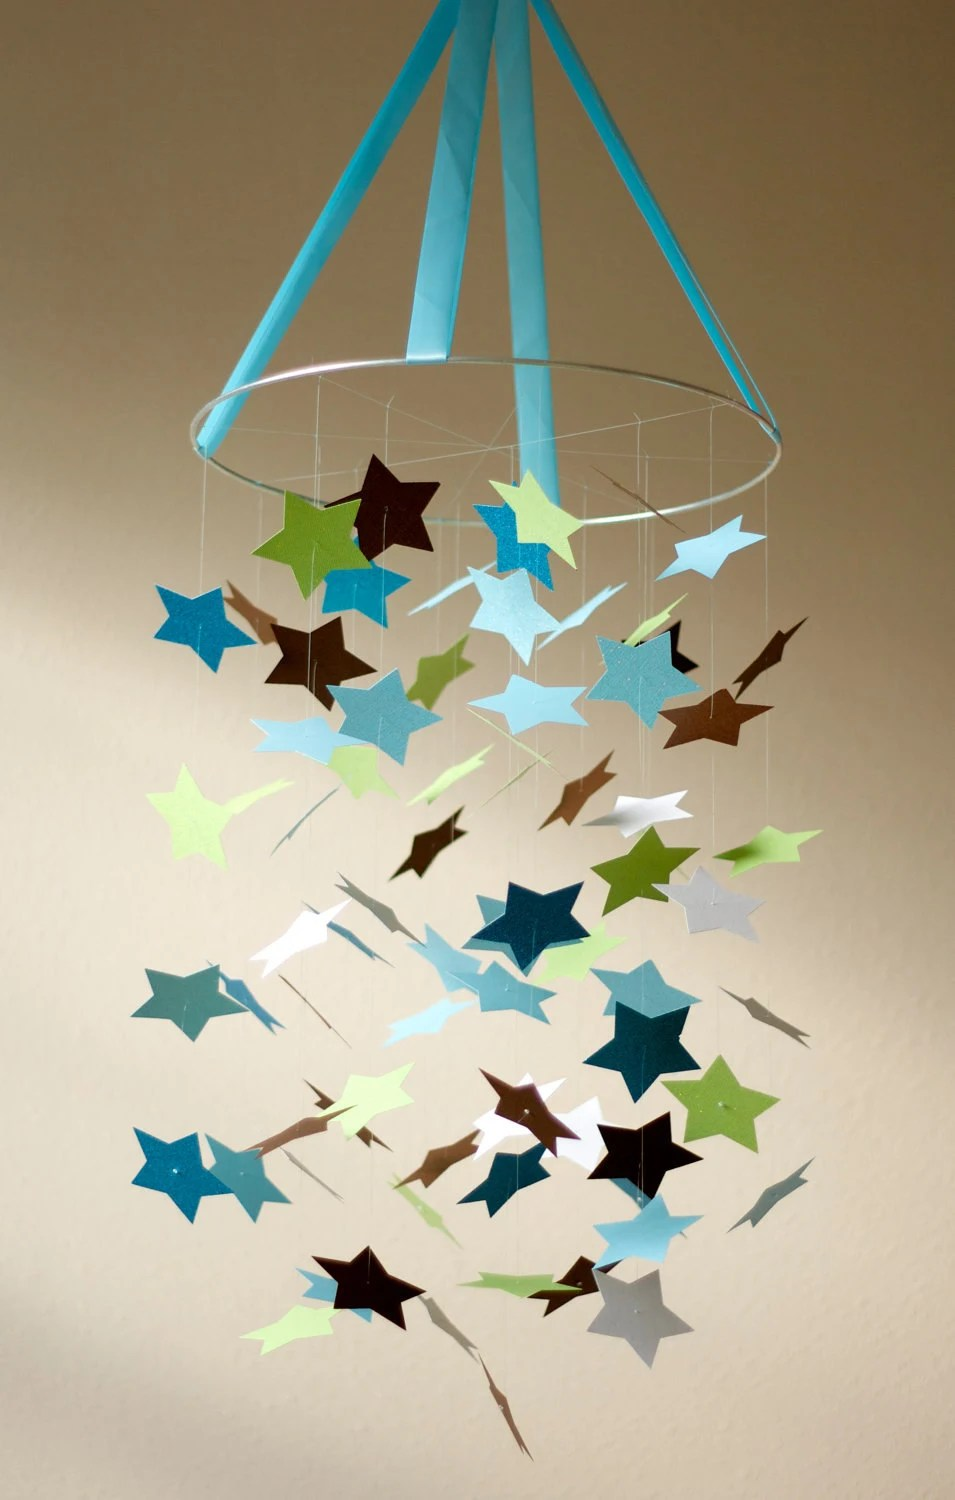 Idee Objet Noel Fabriquer Baby Boy Star Mobile Kit-diy-great Craft By Littledreamersinc